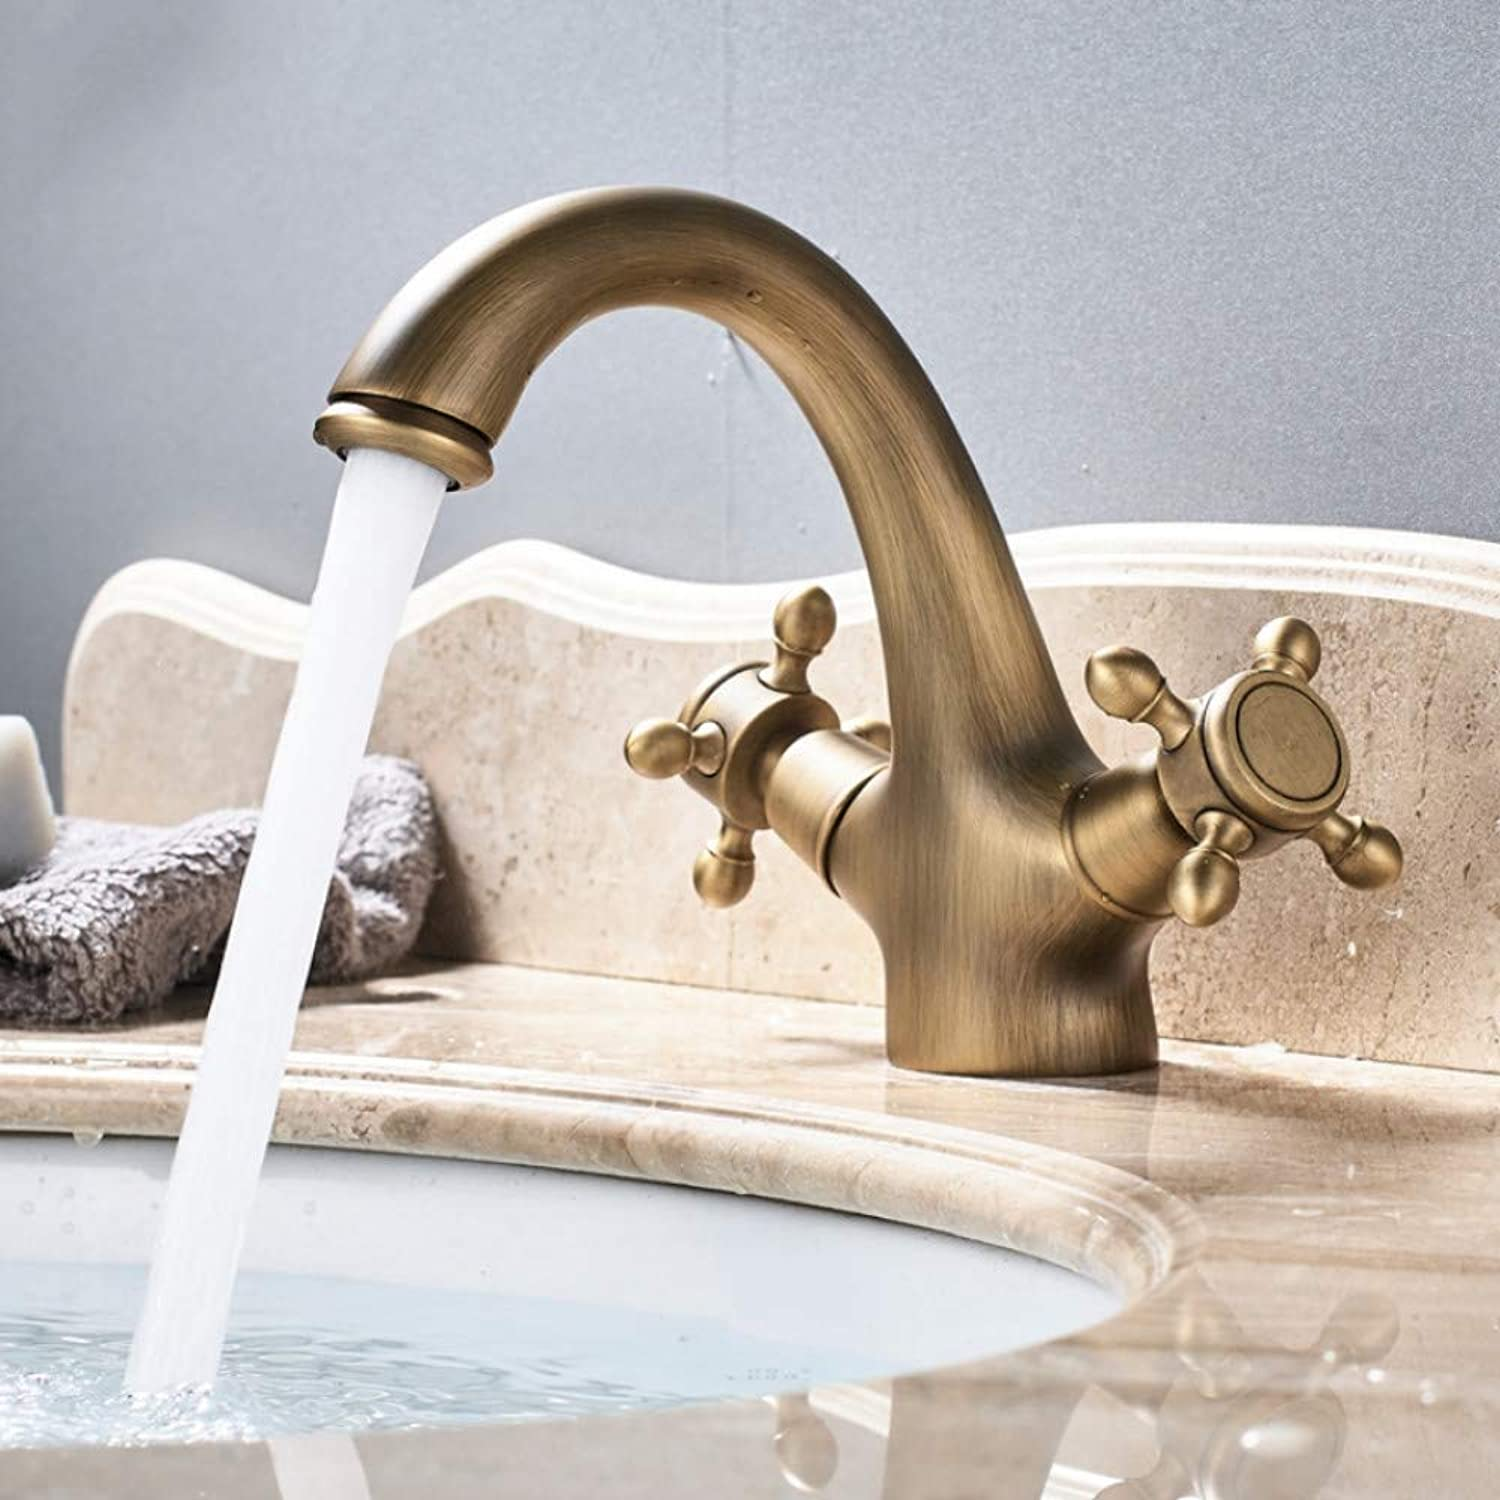 Mzdpp Dual Handle Basin Faucet Single Hole Deck Mounted Brass Bathroom Vanity Sink Mixers Hot and Cold Tap FT-556